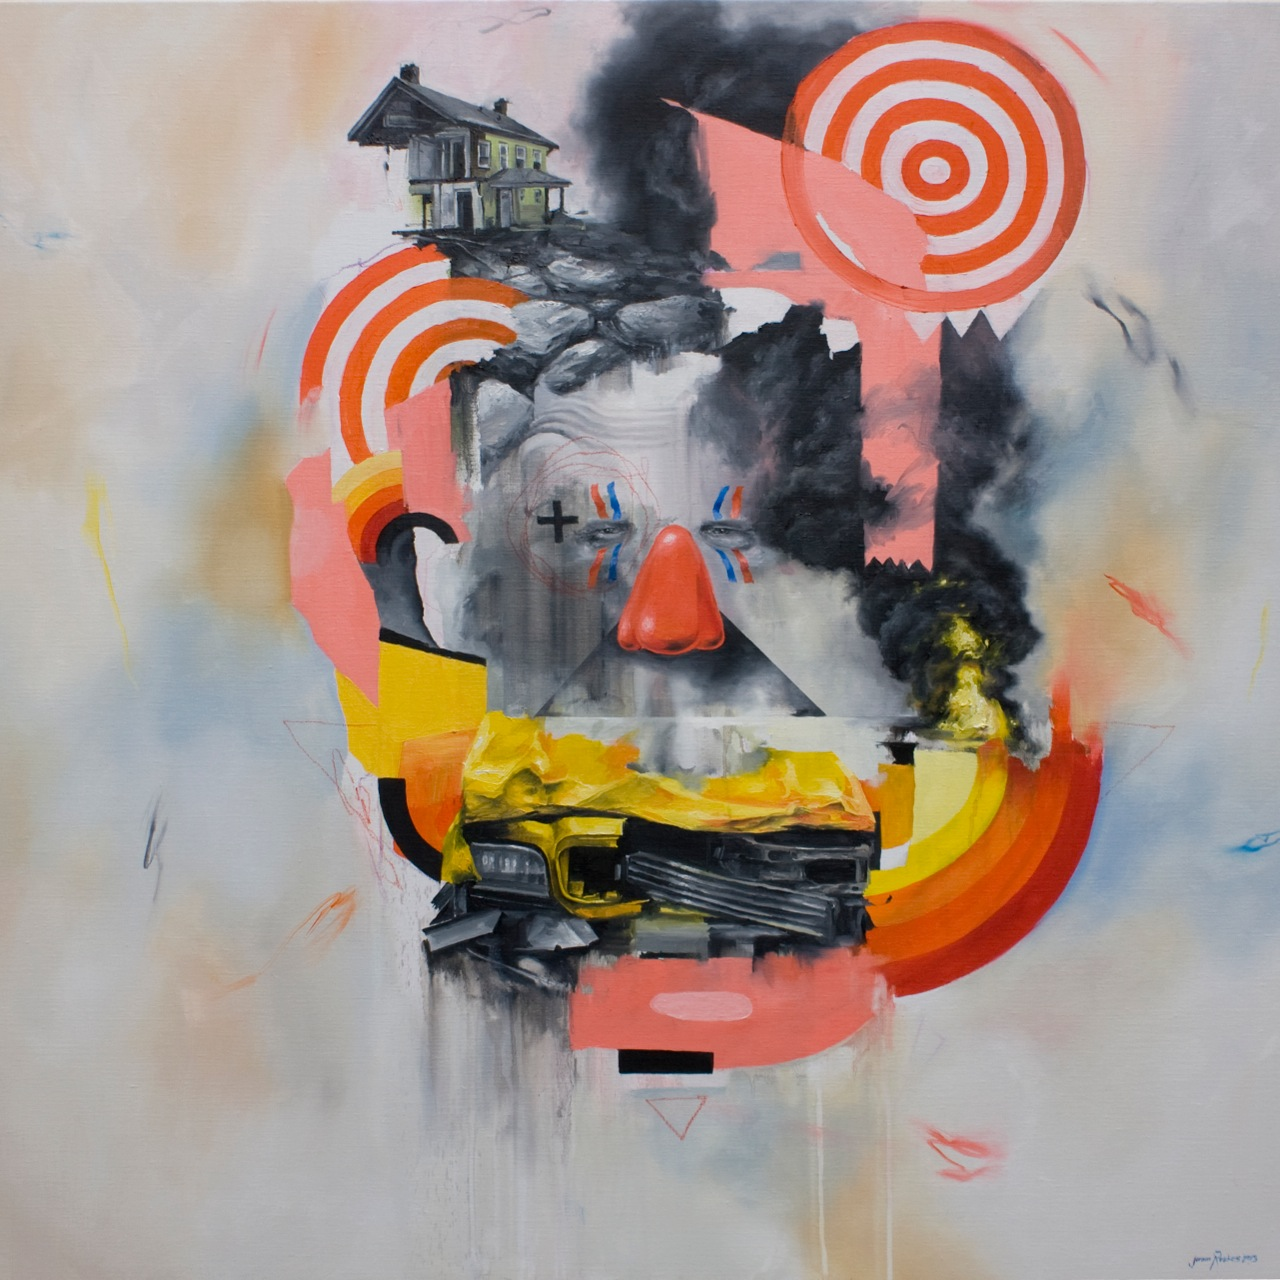 Preview: Joram Roukes, Adam Caldwell, Ekundayo + Rodrigo Luff @ Thinkspace, Culver City: Joram fire,crash, potato.jpg